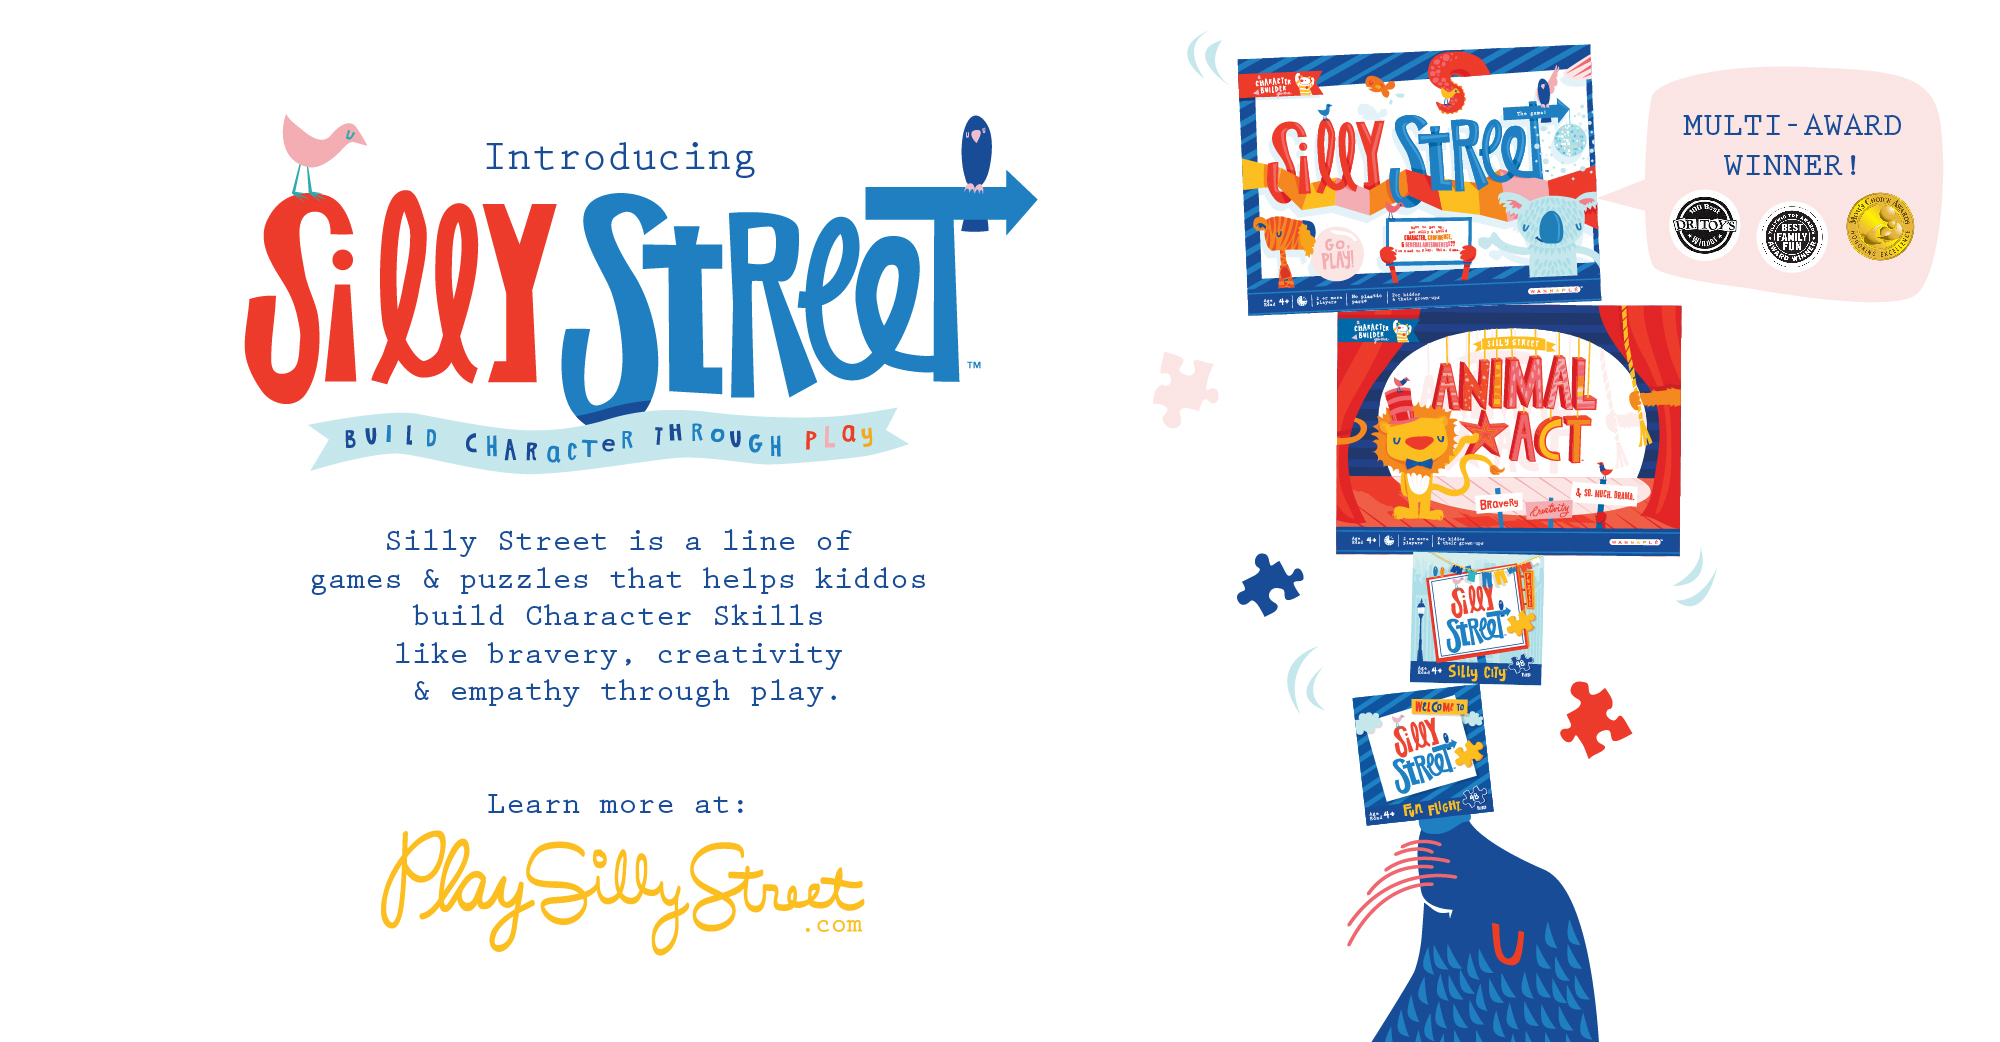 Silly Street Game and Puzzle Lineup